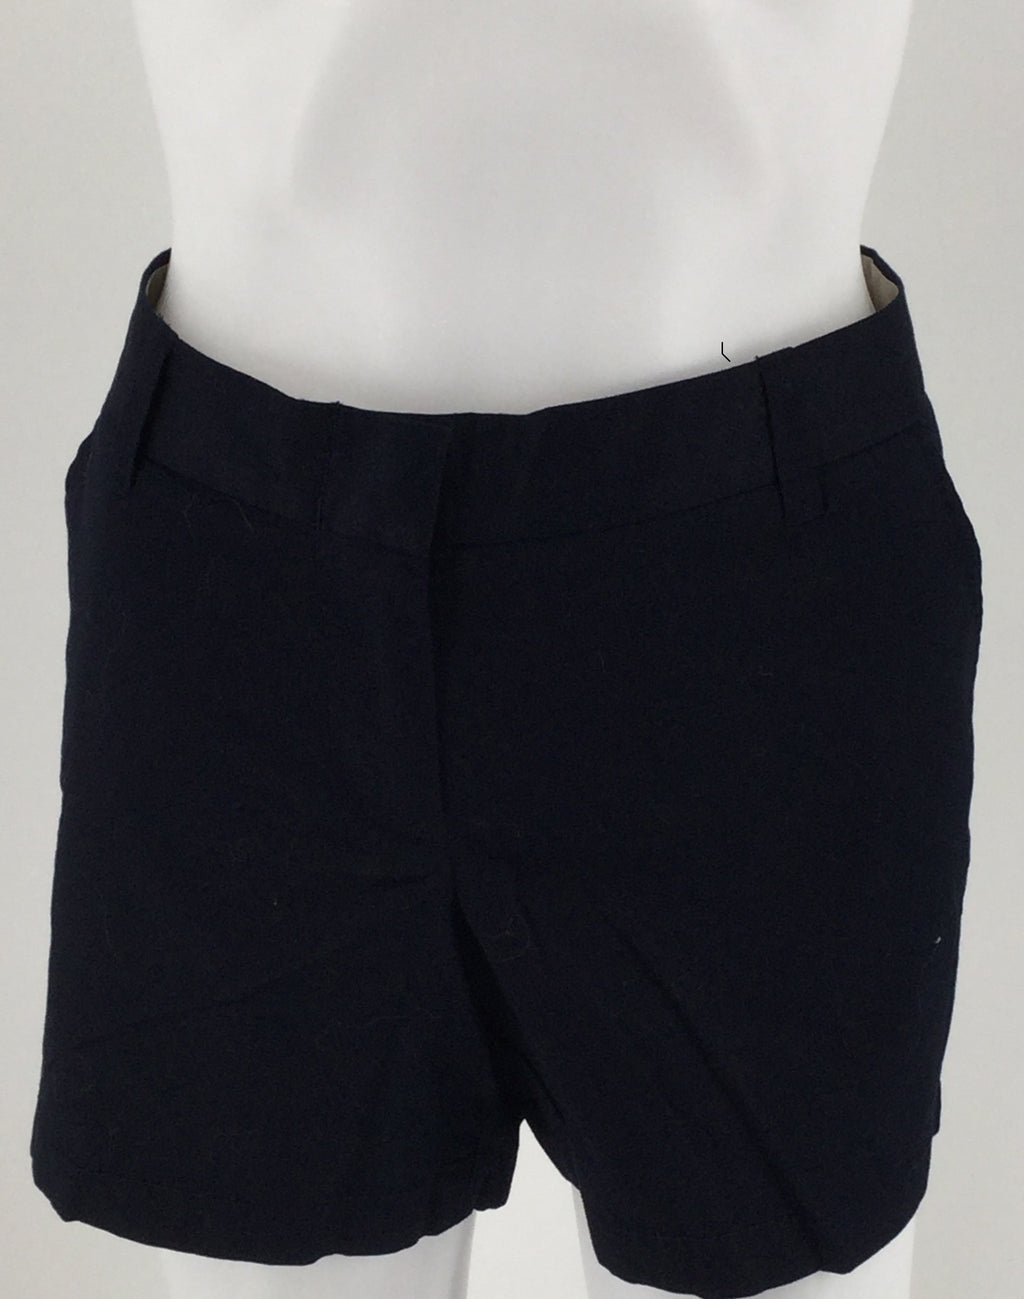 J. Crew Navy Blue Chino City Fit Shorts Size 8 Nwt Msrp $32.50